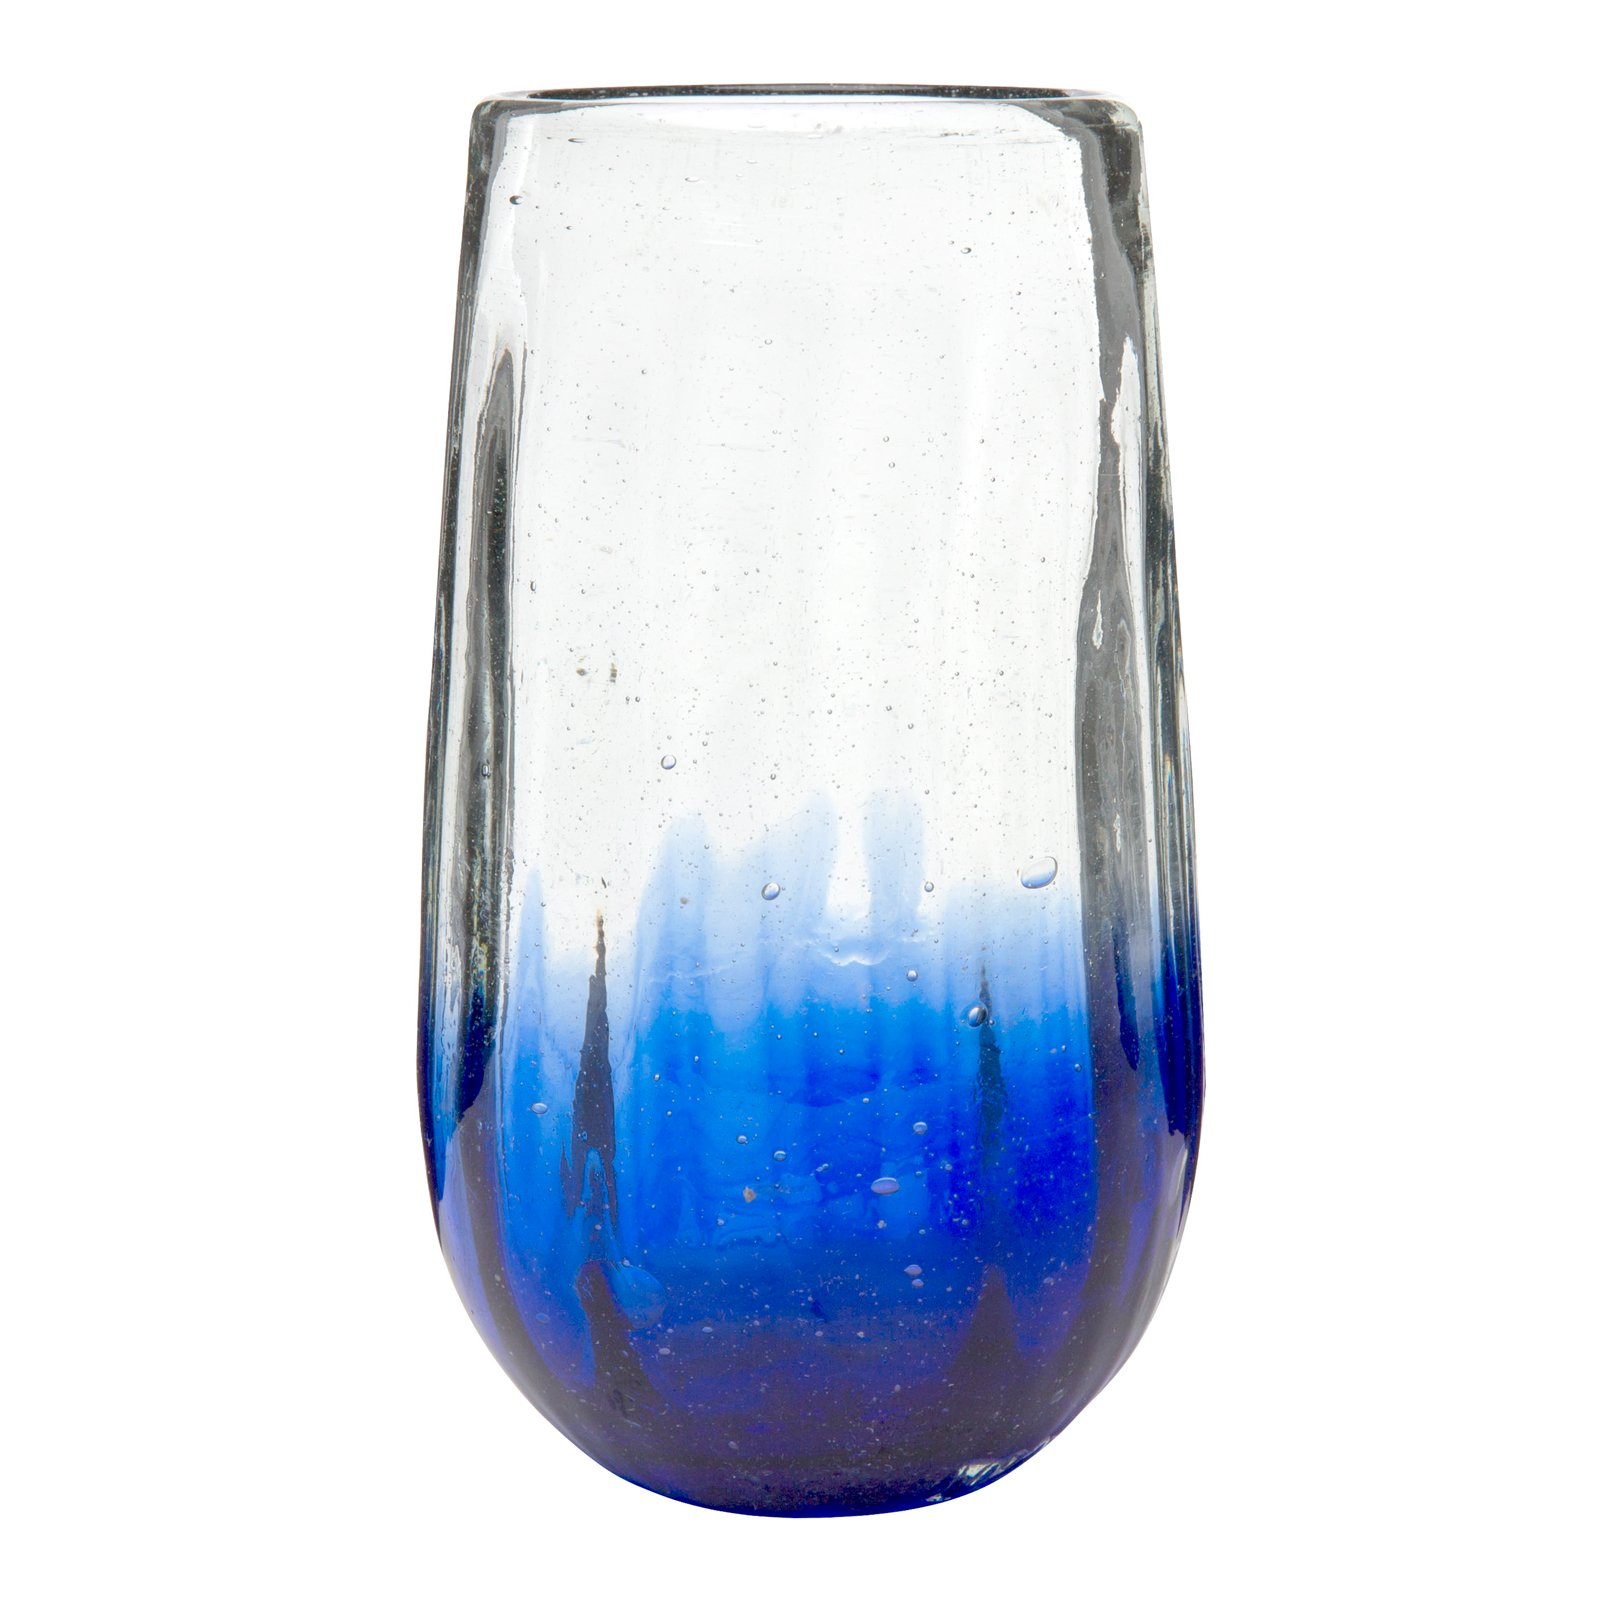 Amici Home, 7MCR068S6R, Rosa Hiball Drinking Glass, Translucent Cobalt Ombre, Recycled Handblown Artisanal Mexican Tabletop Glassware, 20 Ounce Capacity, Set of 6